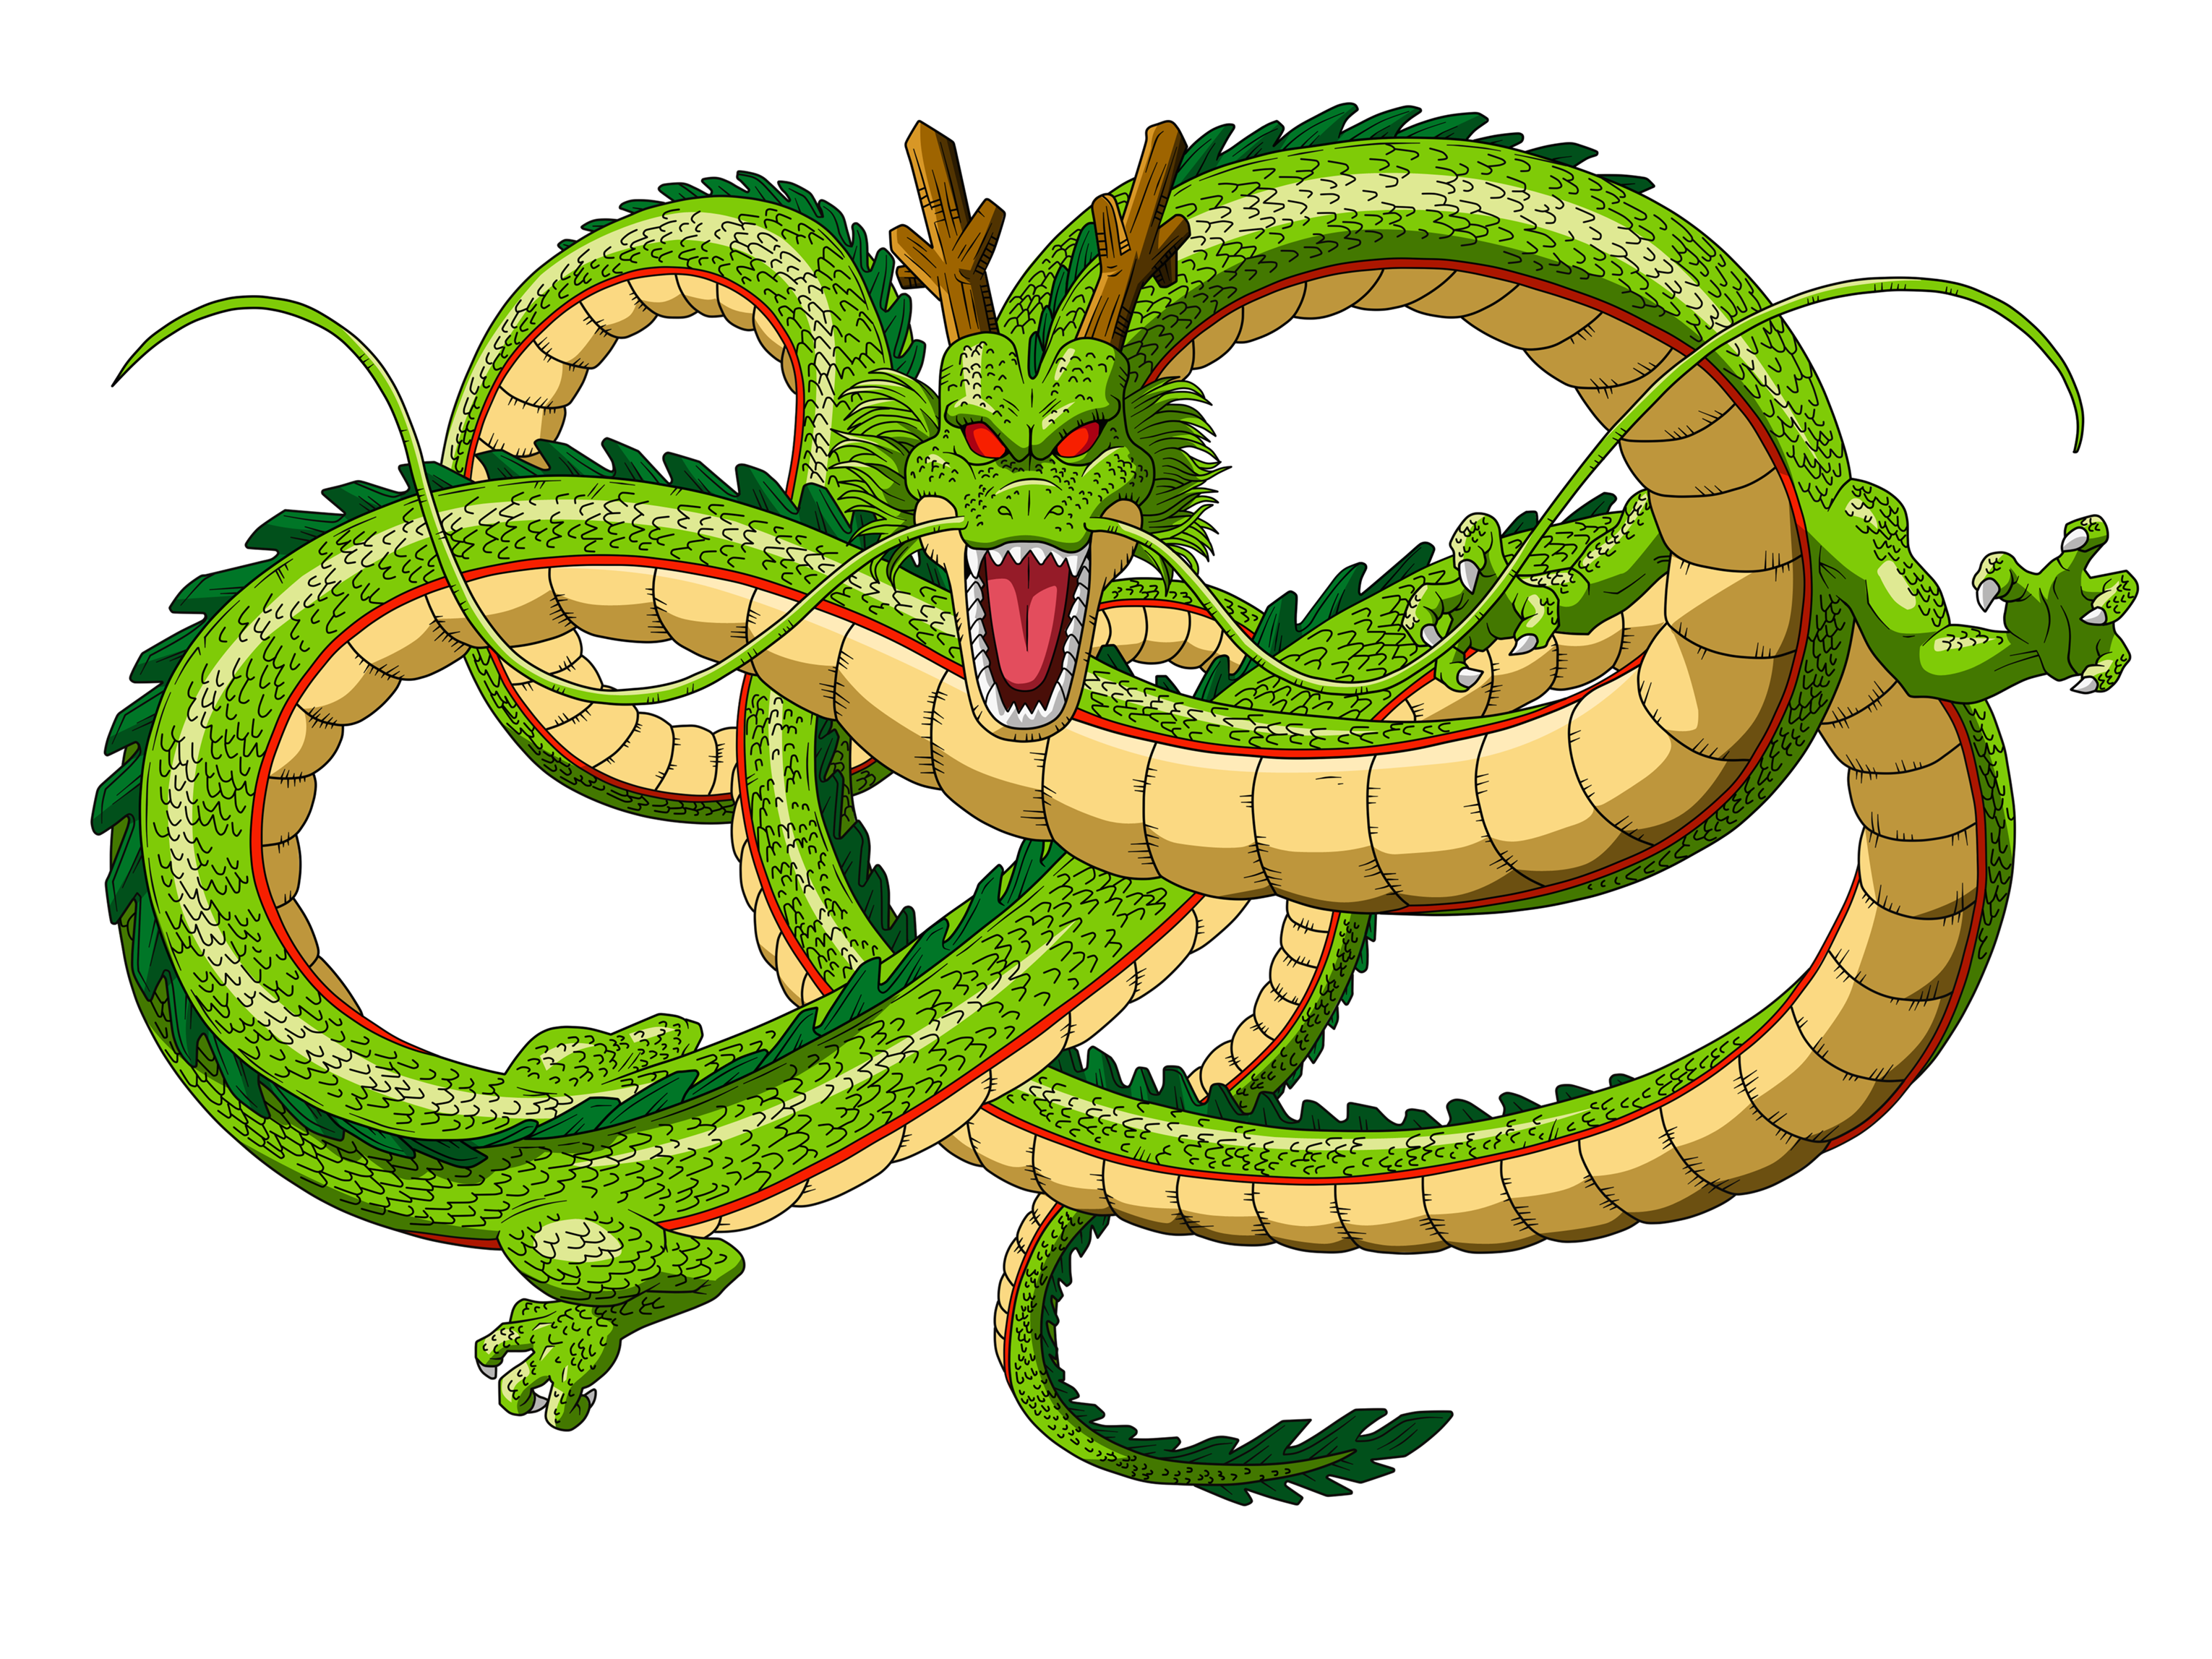 Dragon PNG Images Transparent Free Download.